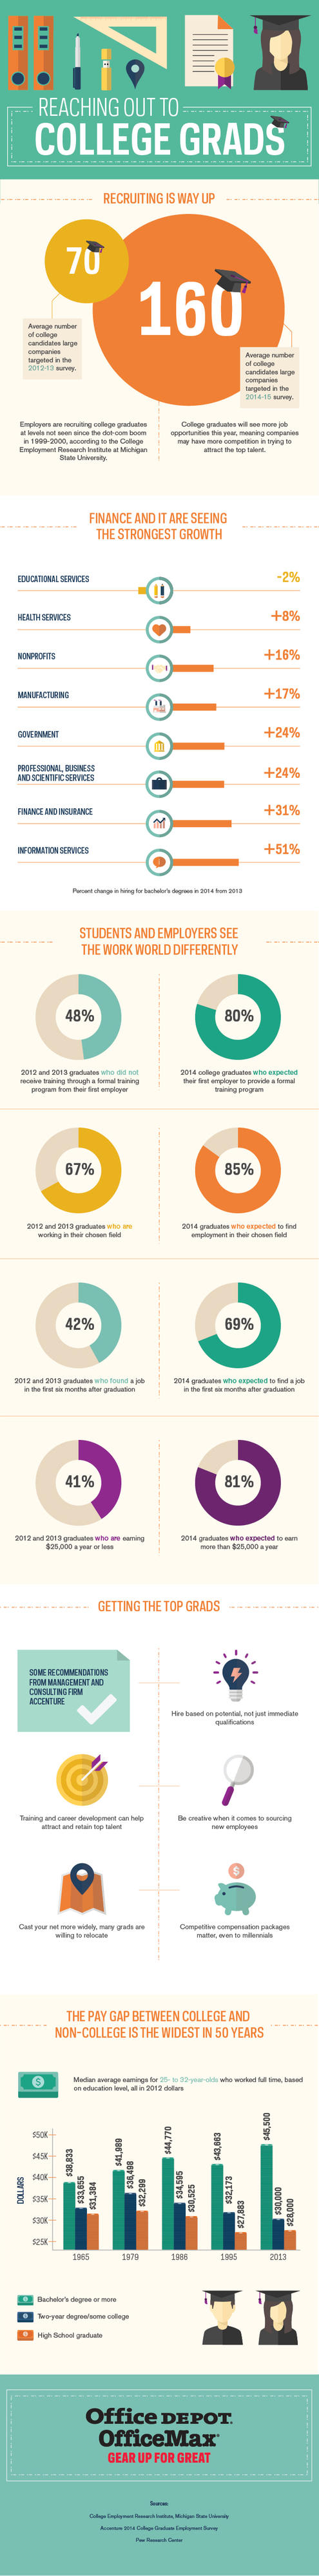 Reaching Out To College Grads Infographic